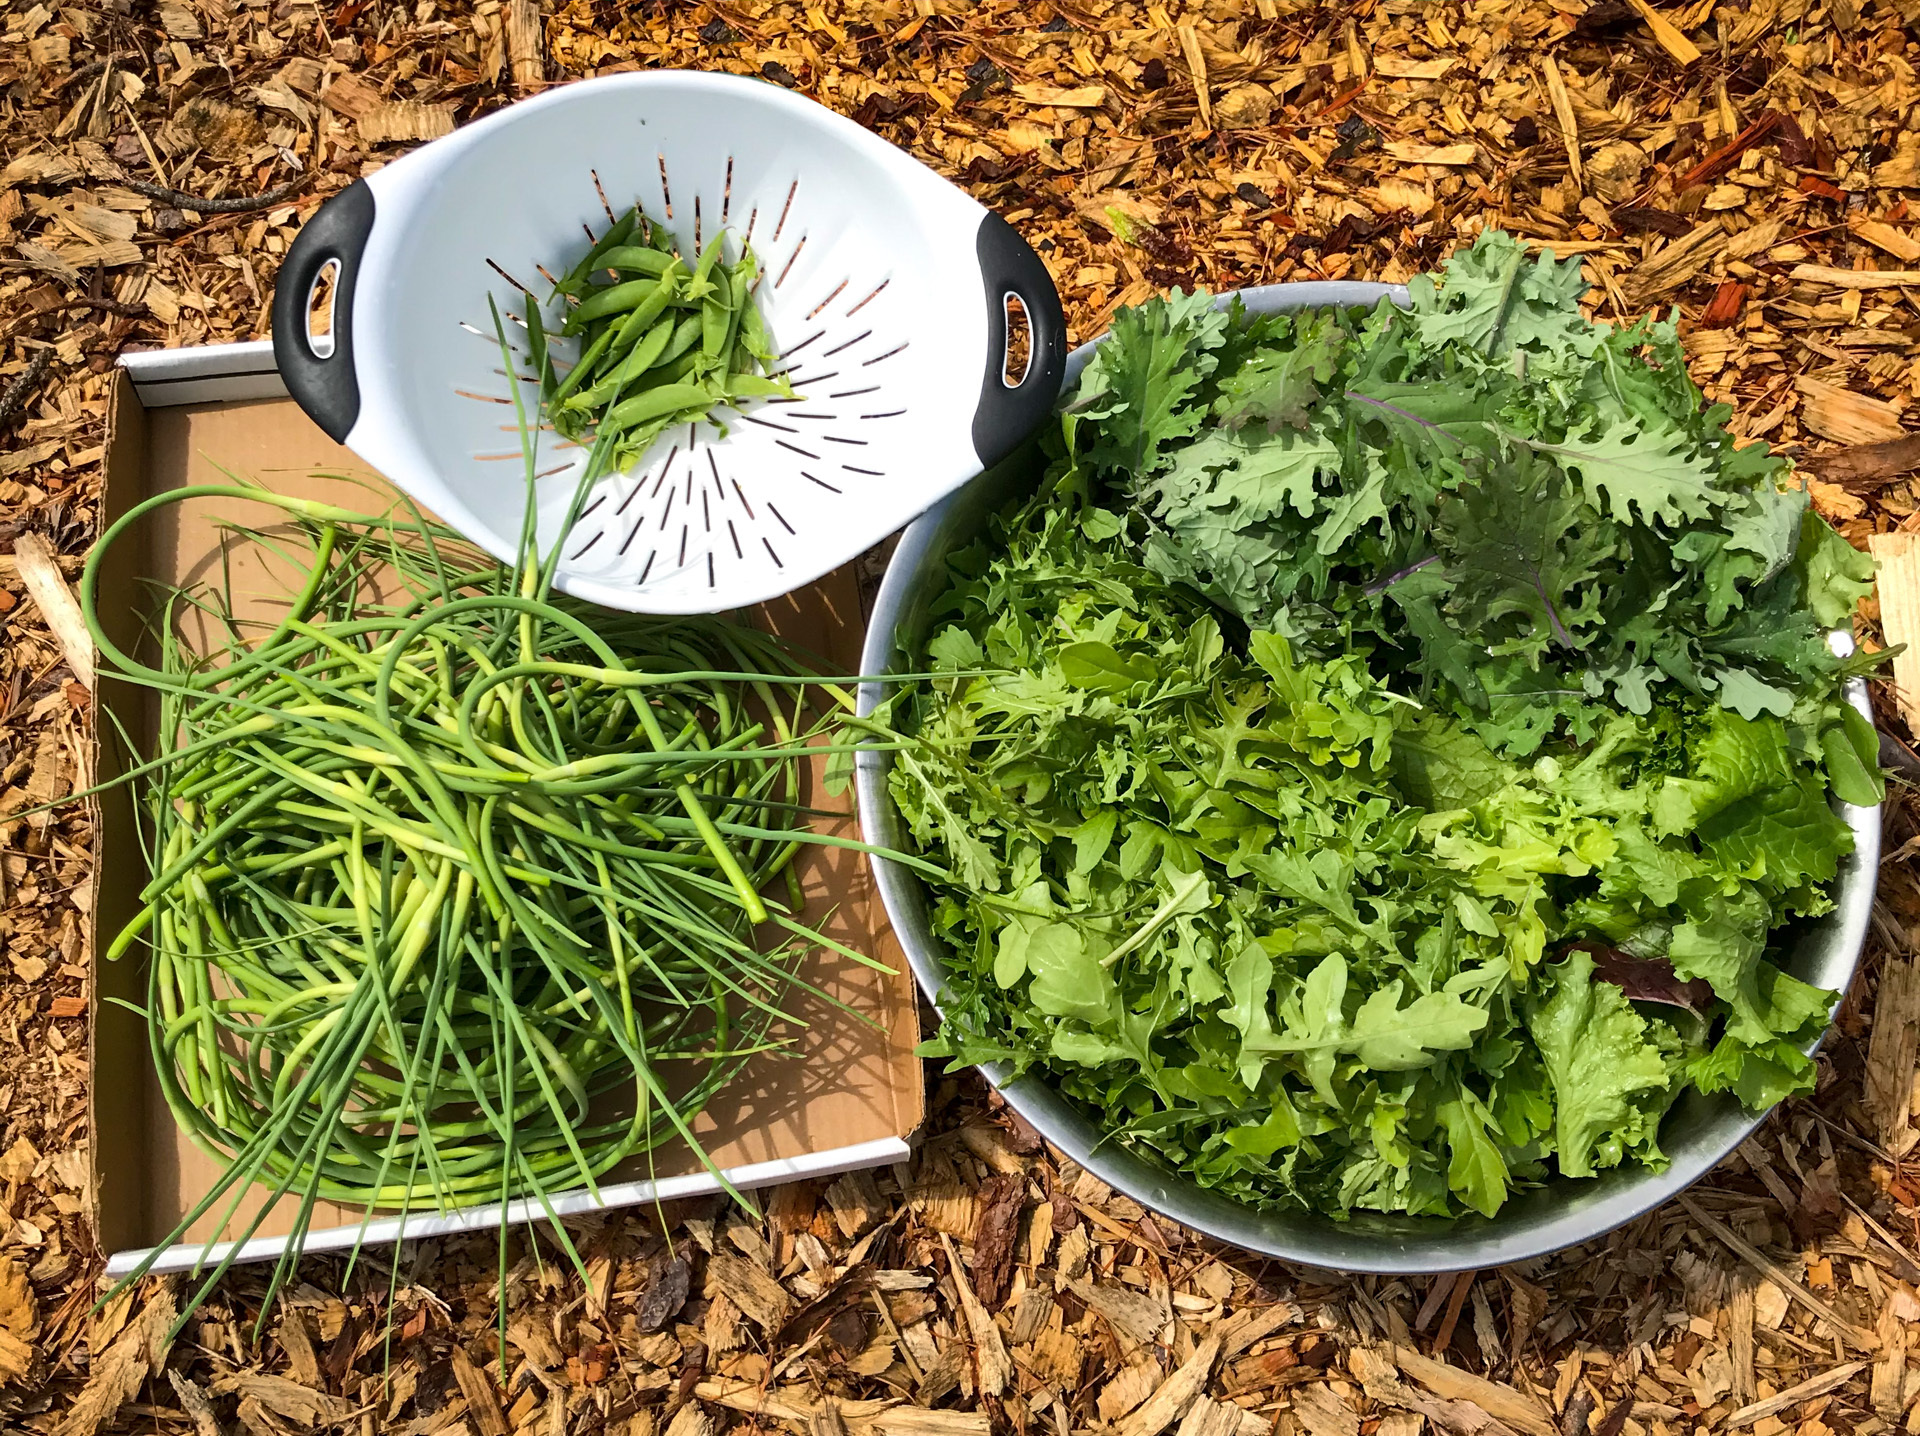 ECI's first 2020 pantry donation harvest. Snap peas, garlic scapes, arugula, kale and mixed greens.